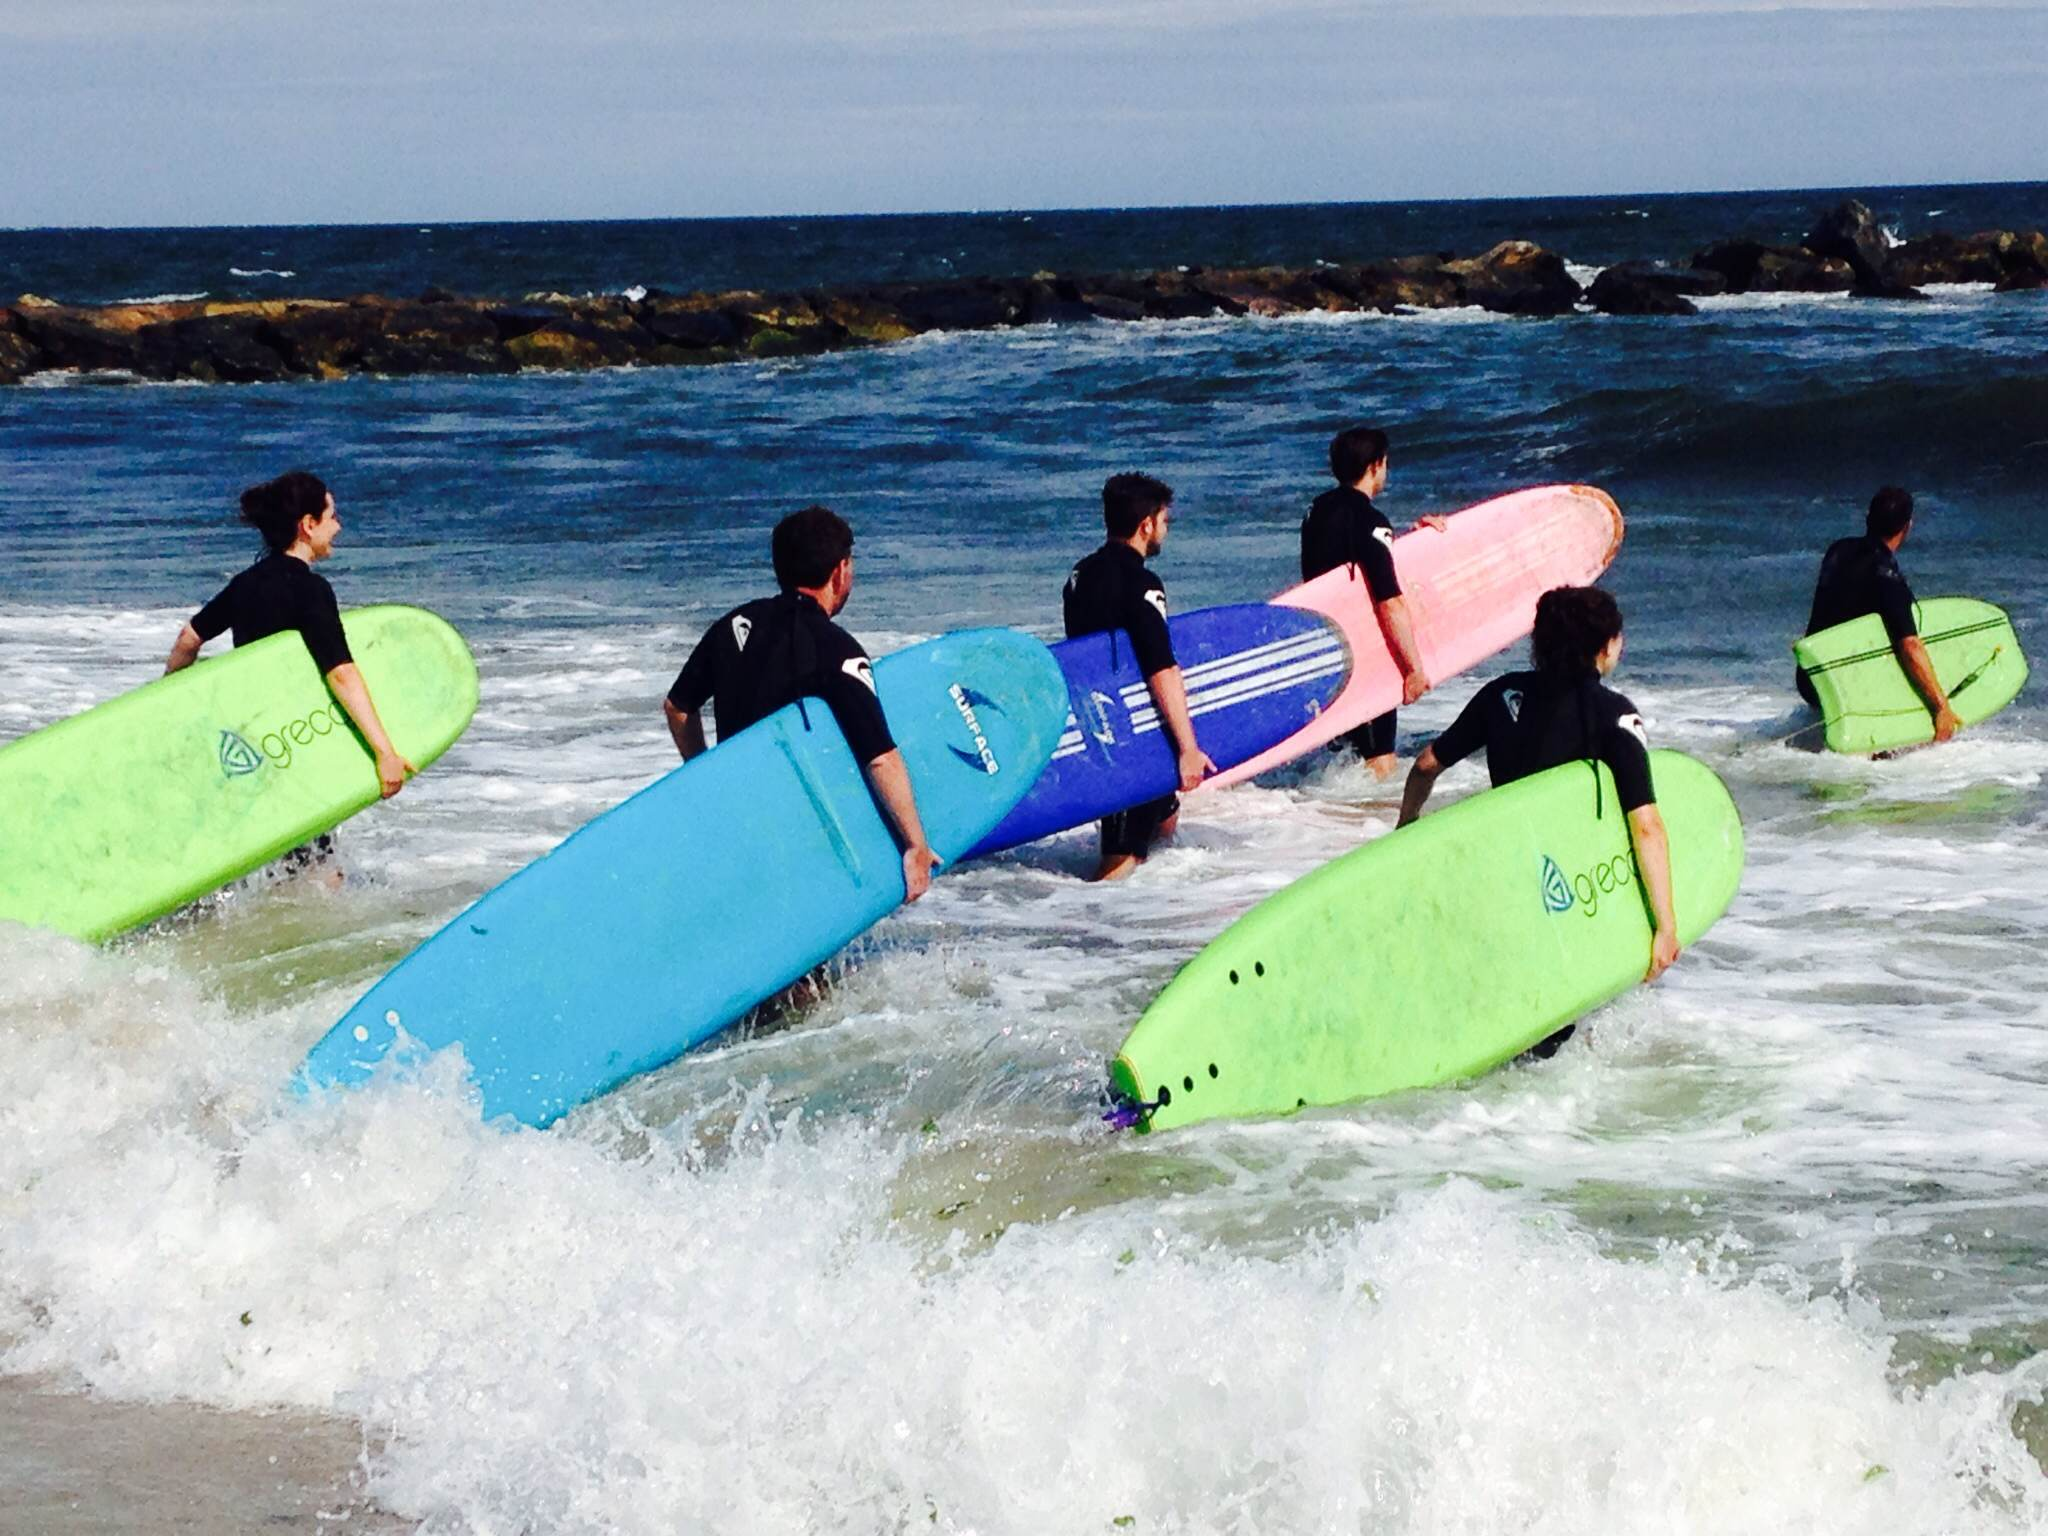 Team OutdoorFest Surfing at Rockaway Beach in 2014